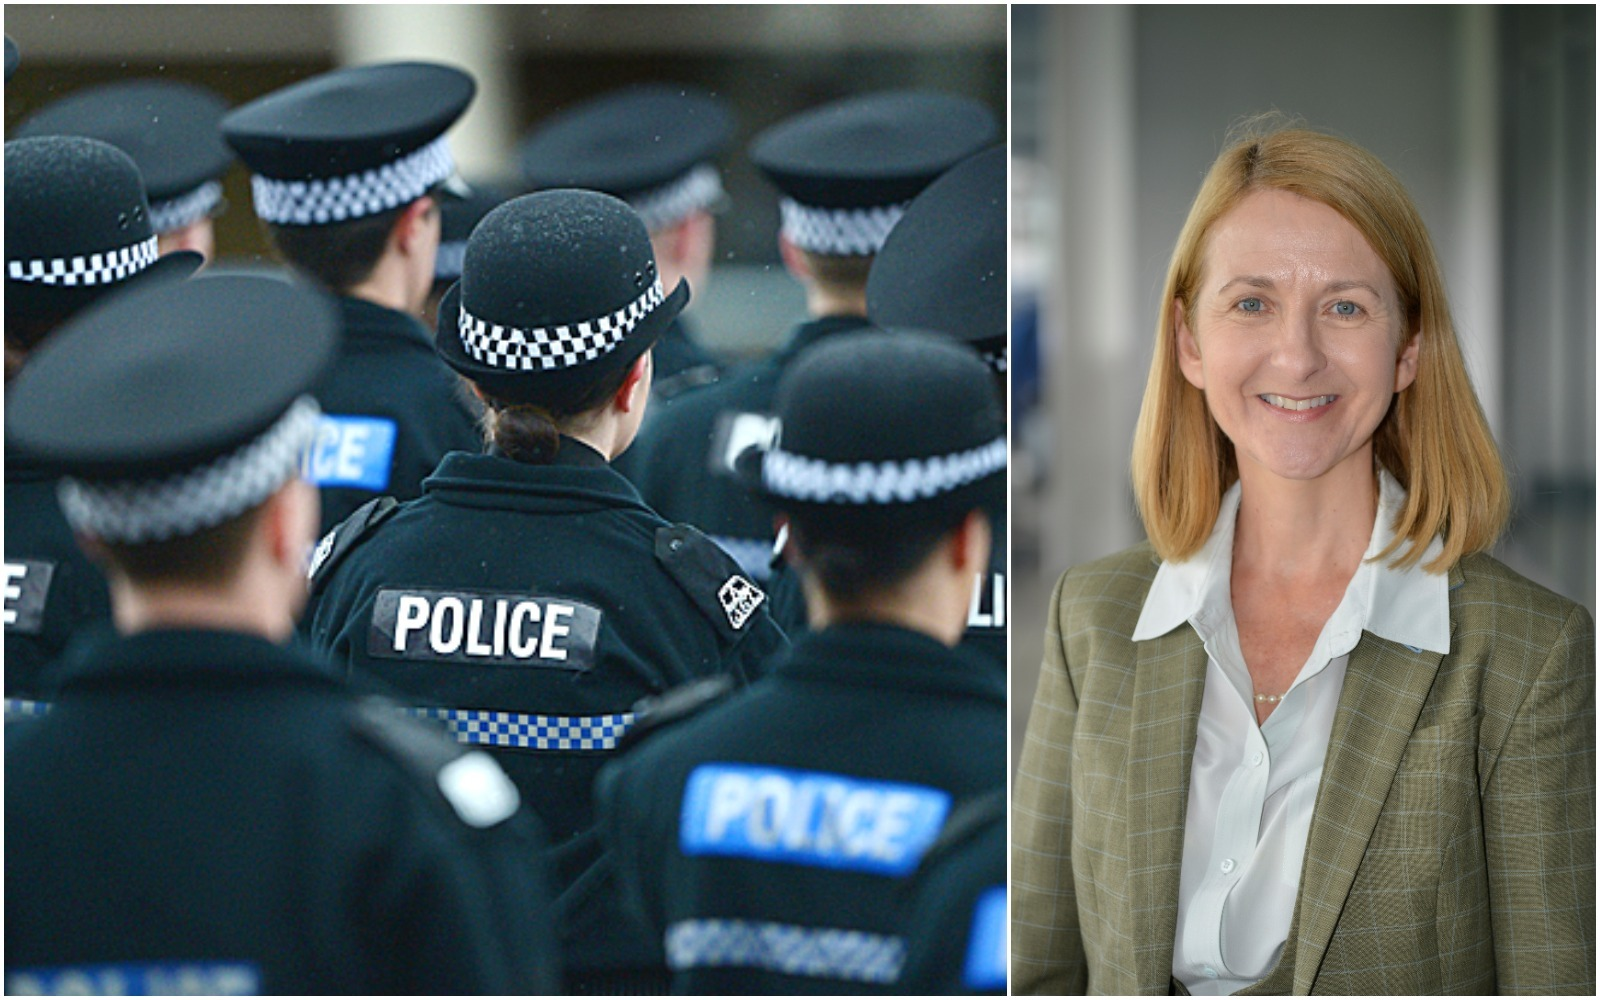 'I will lobby for more police funding'- commissioner pledges